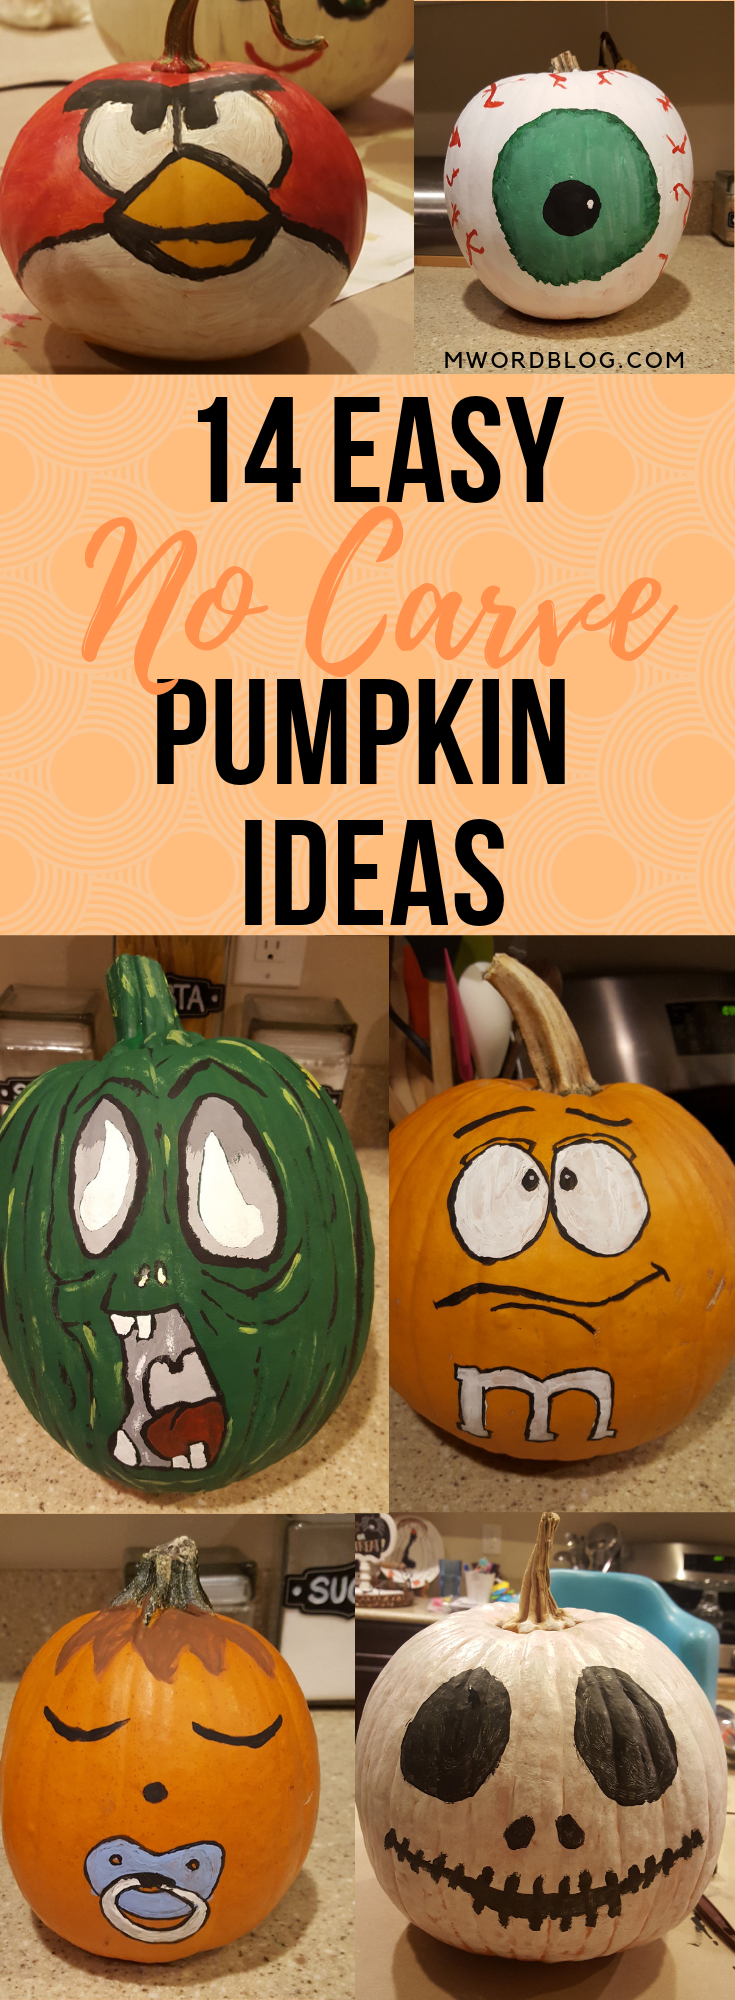 14 EASY NO-CARVE PUMPKIN PAINTING IDEAS (DIY) #pumpkinpaintingideascreative